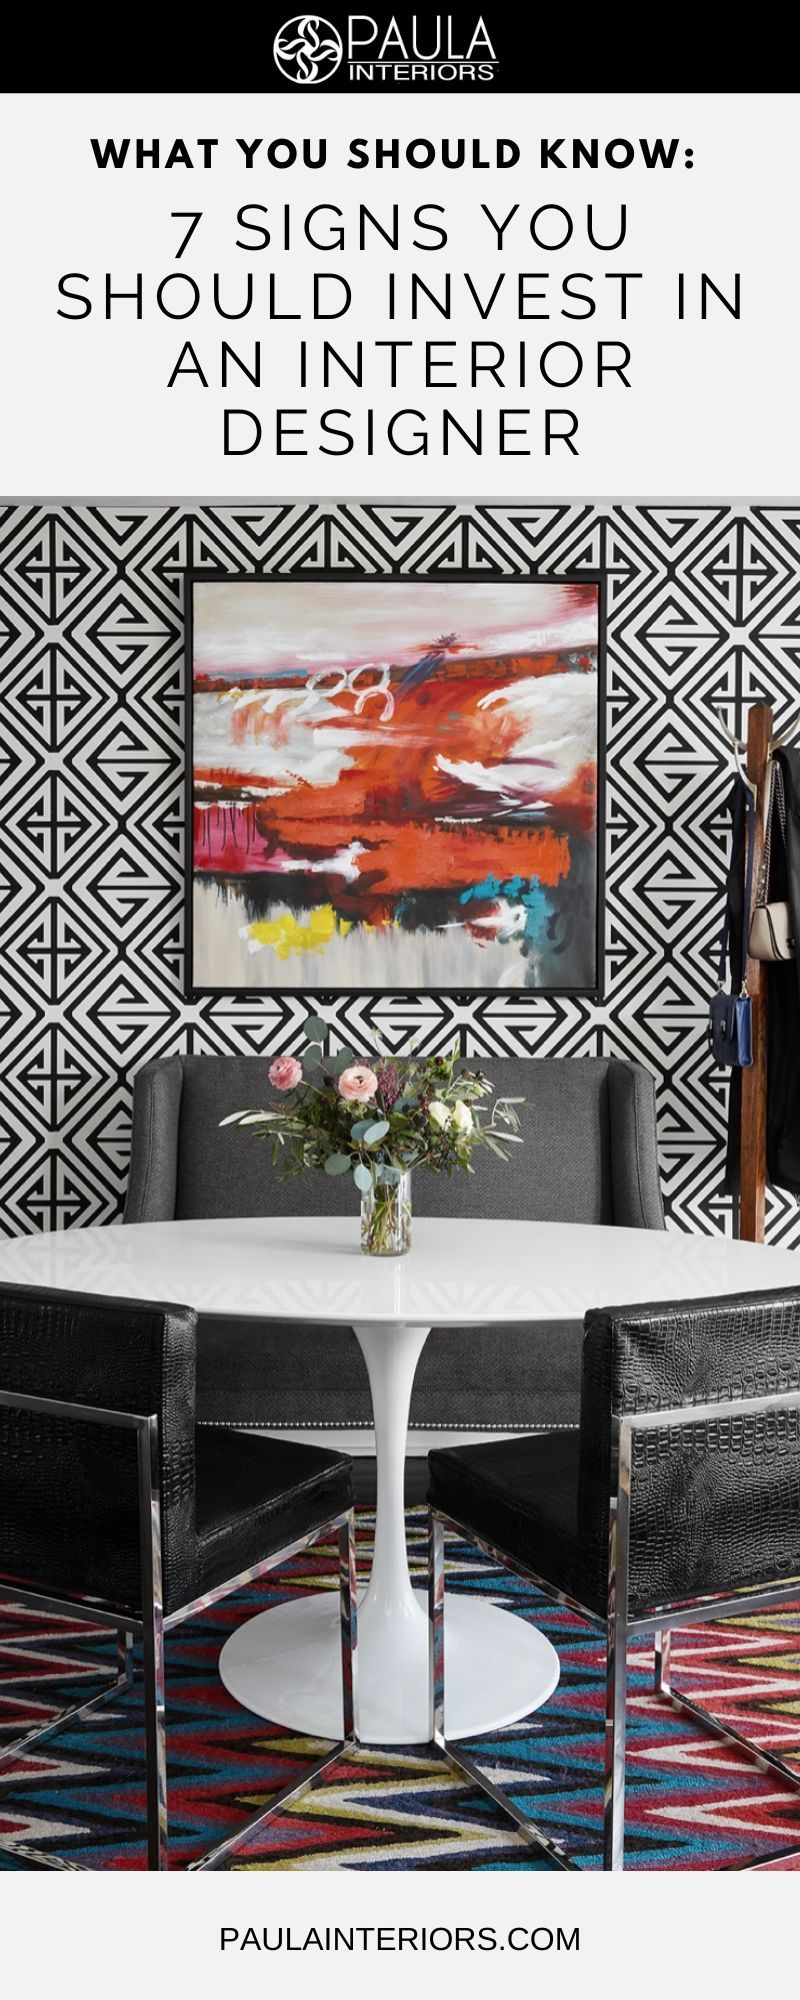 """Have you decided it's time to stop thinking about that much-needed interior design project and just do it? The question immediately arises, """"Do I need to invest in an interior designer?"""" Click below for the seven signs you need to do just that, rather than going it alone: #homedecor #interiordesign #interiordesigntips #decor"""